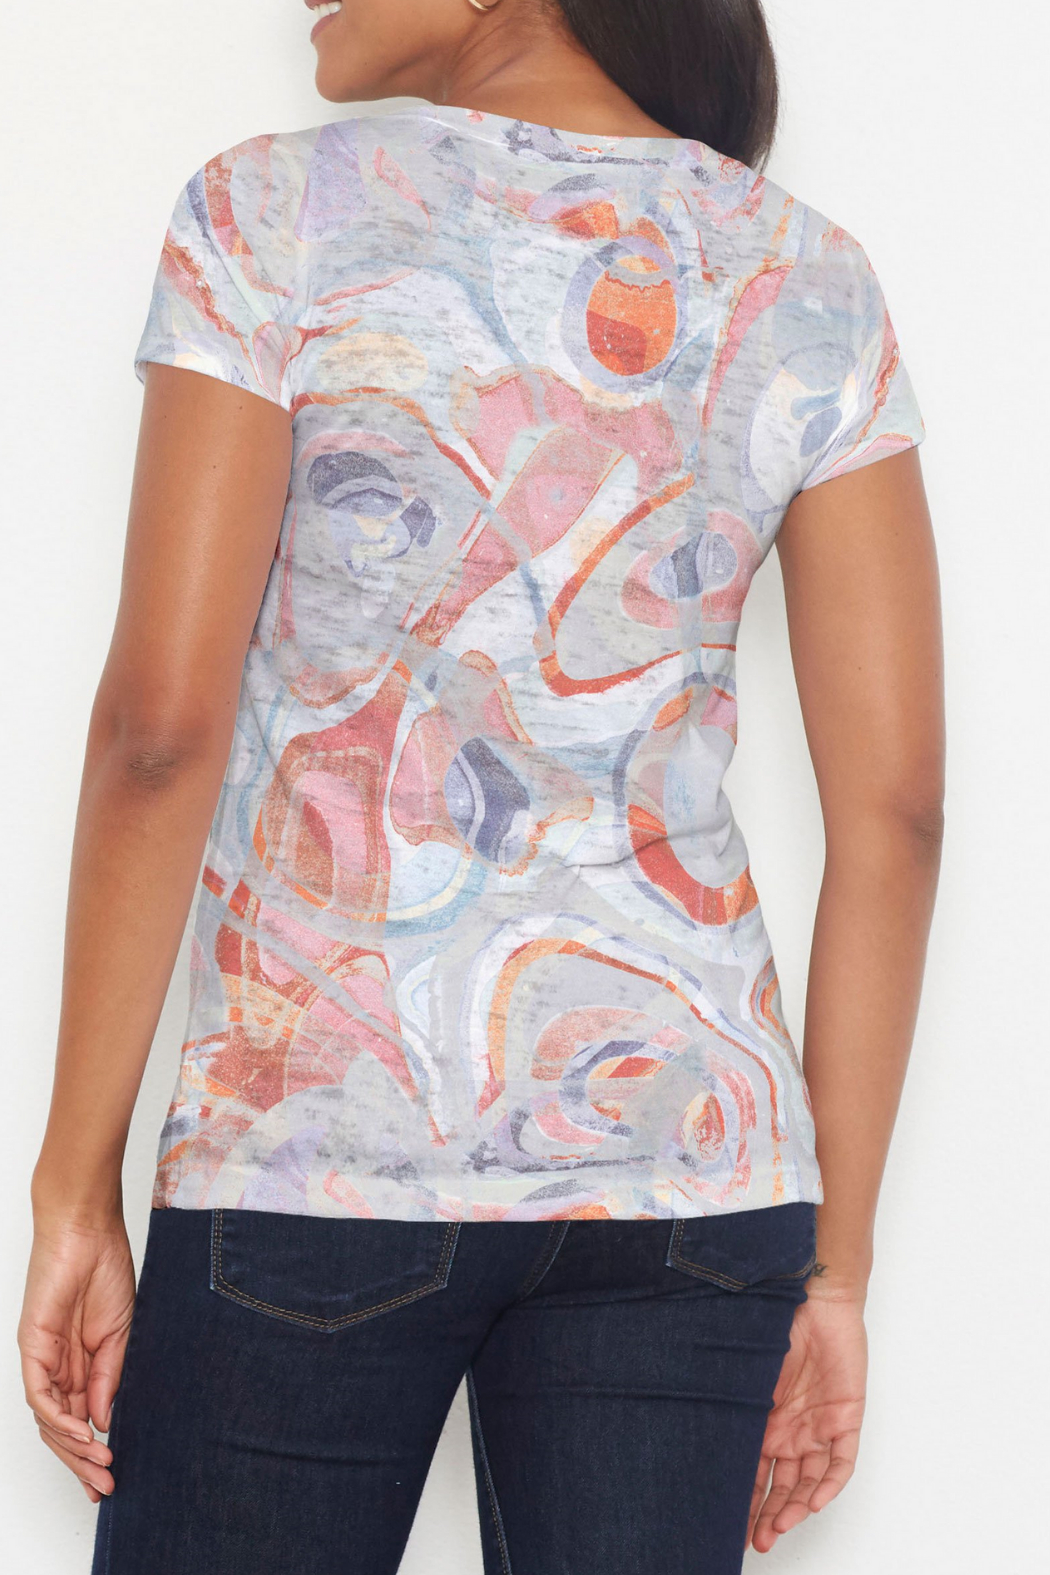 Whimsy Rose Marble Grey Short Sleeve Scoop Shirt - Front Full Image